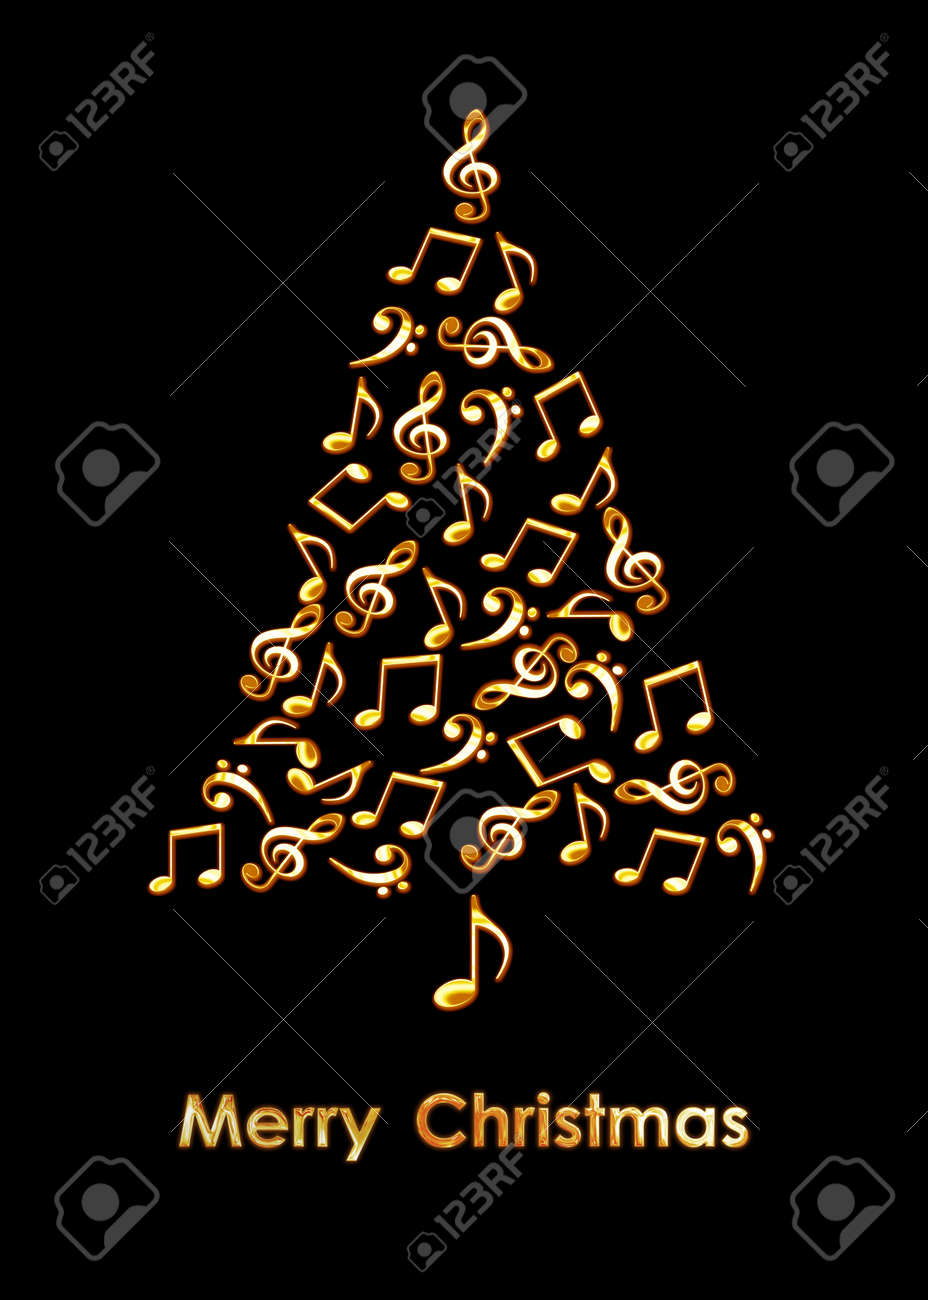 Christmas tree made of golden musical notes on black background. Merry Christmas music greeting card - 156724748